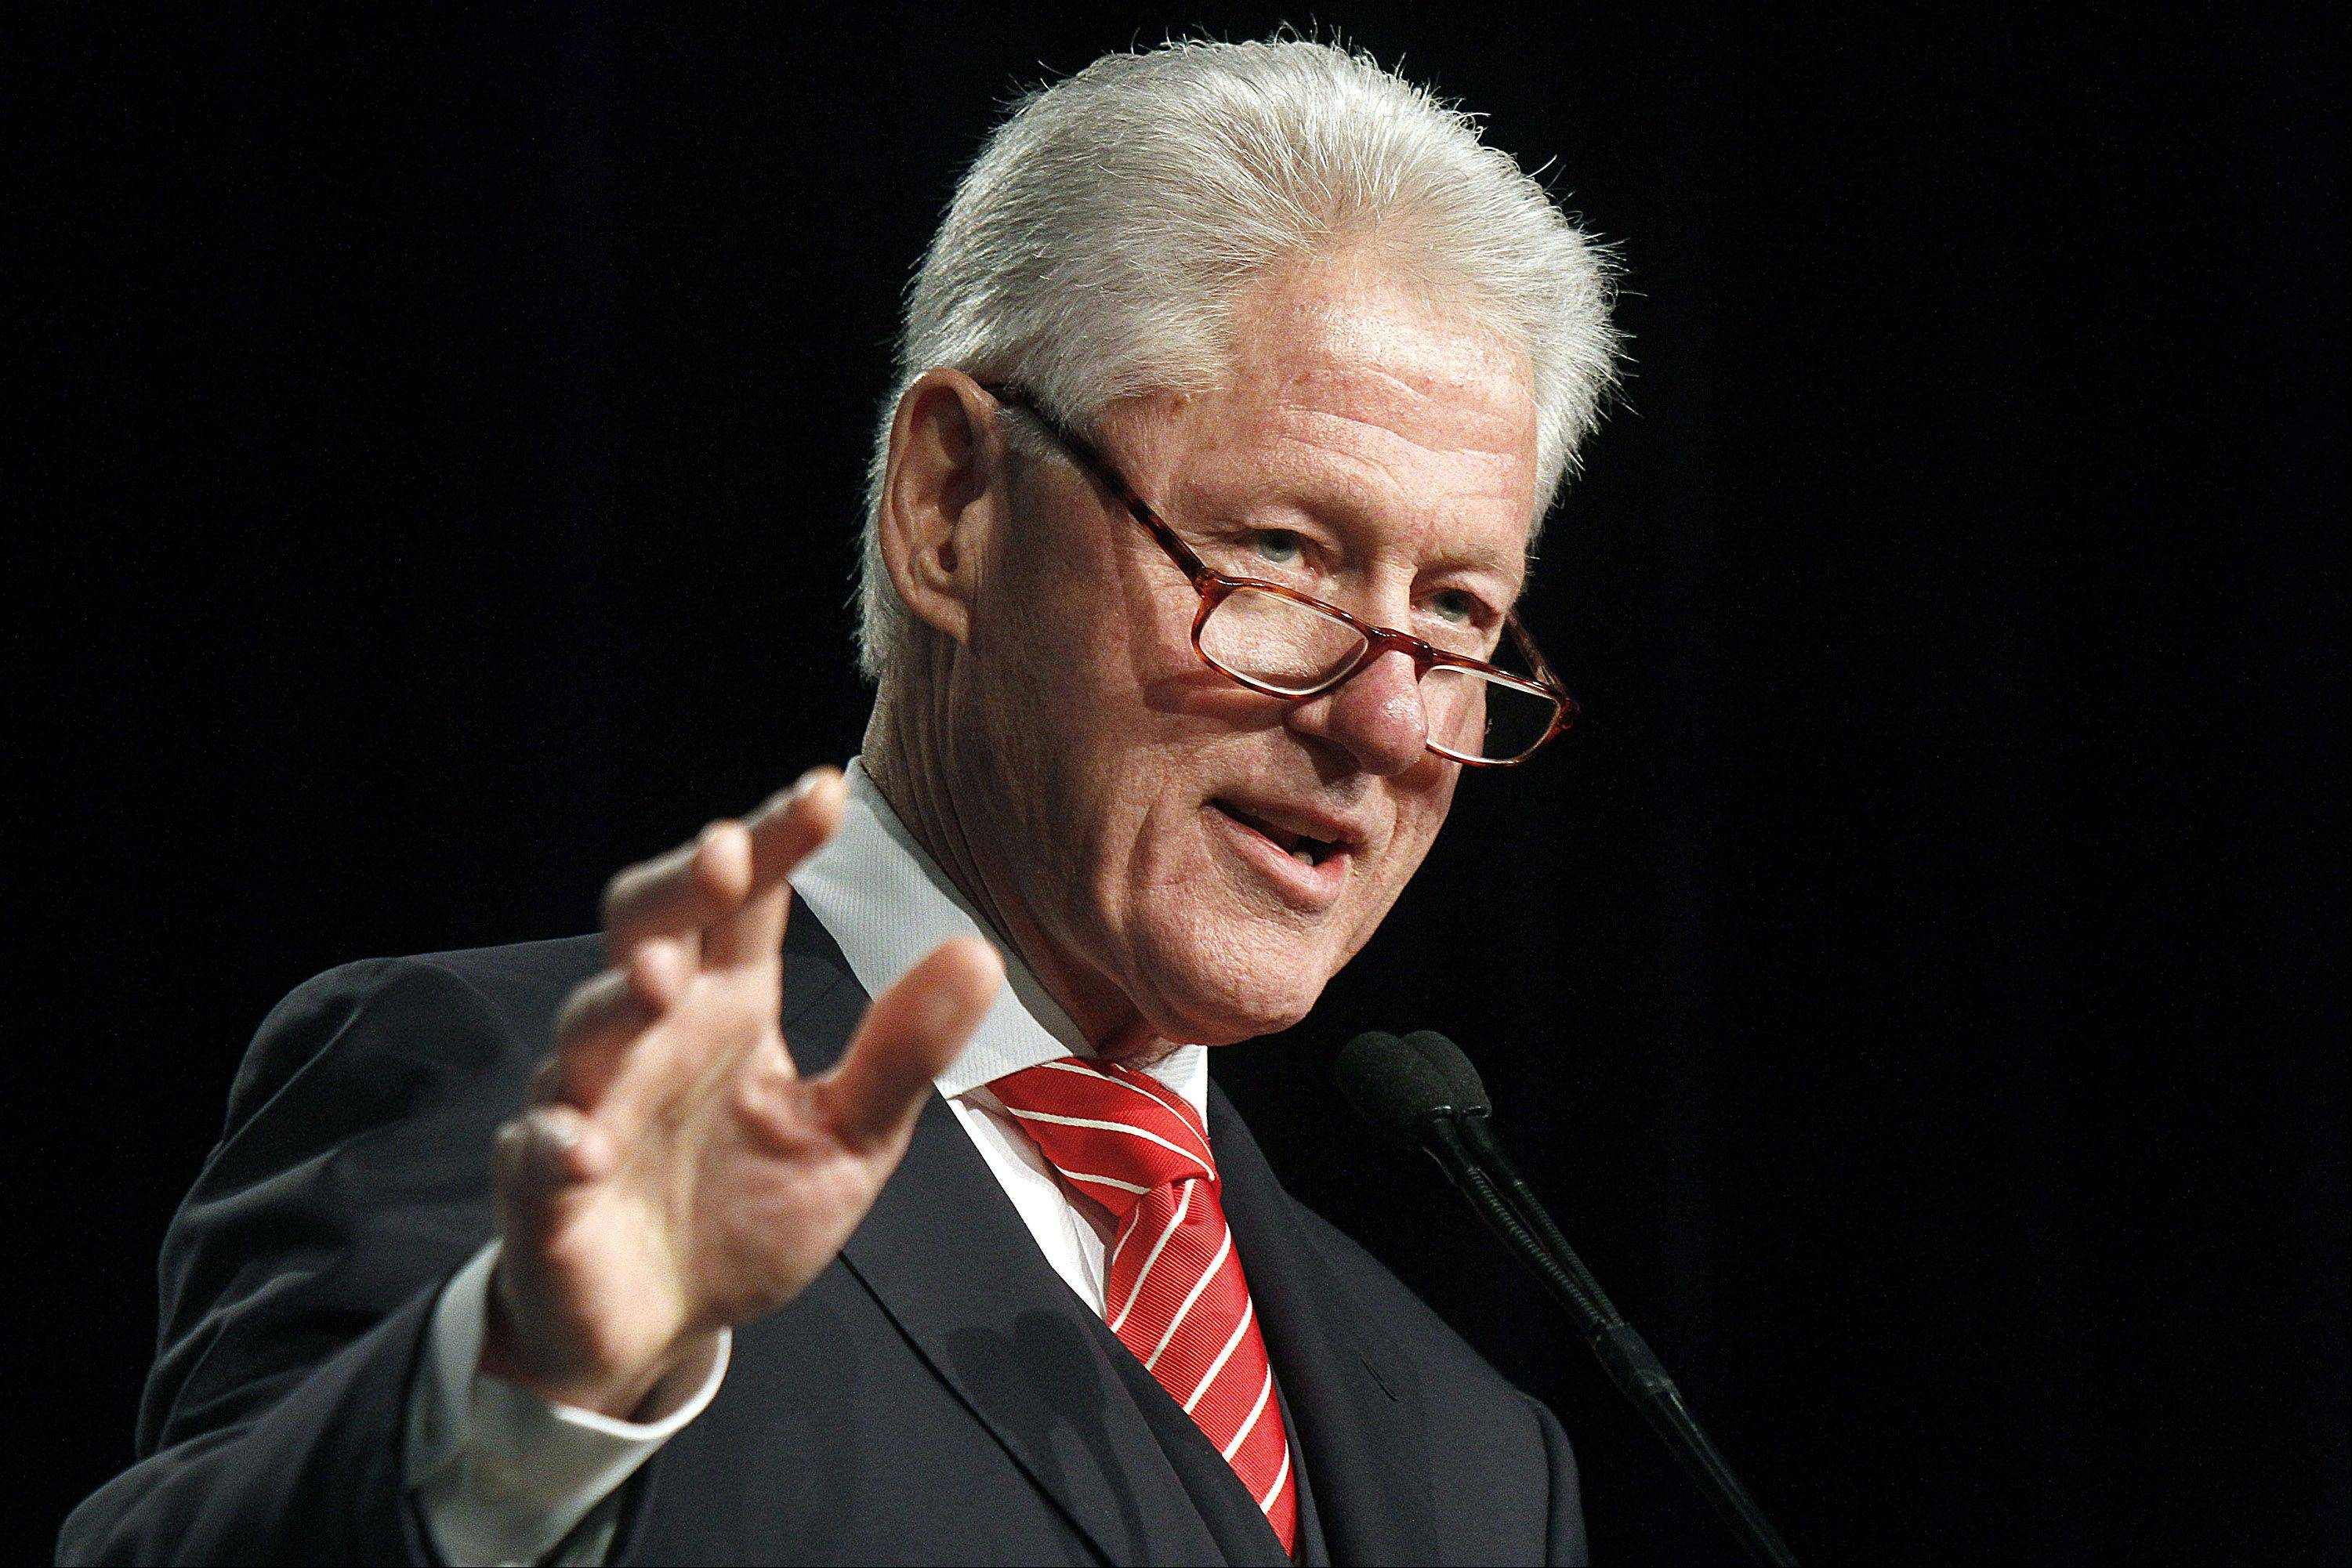 Former President Bill Clinton says the U.S. Supreme Court should strike down a law he signed 17 years ago that bans same-sex marriage, calling the measure �incompatible� with the Constitution.